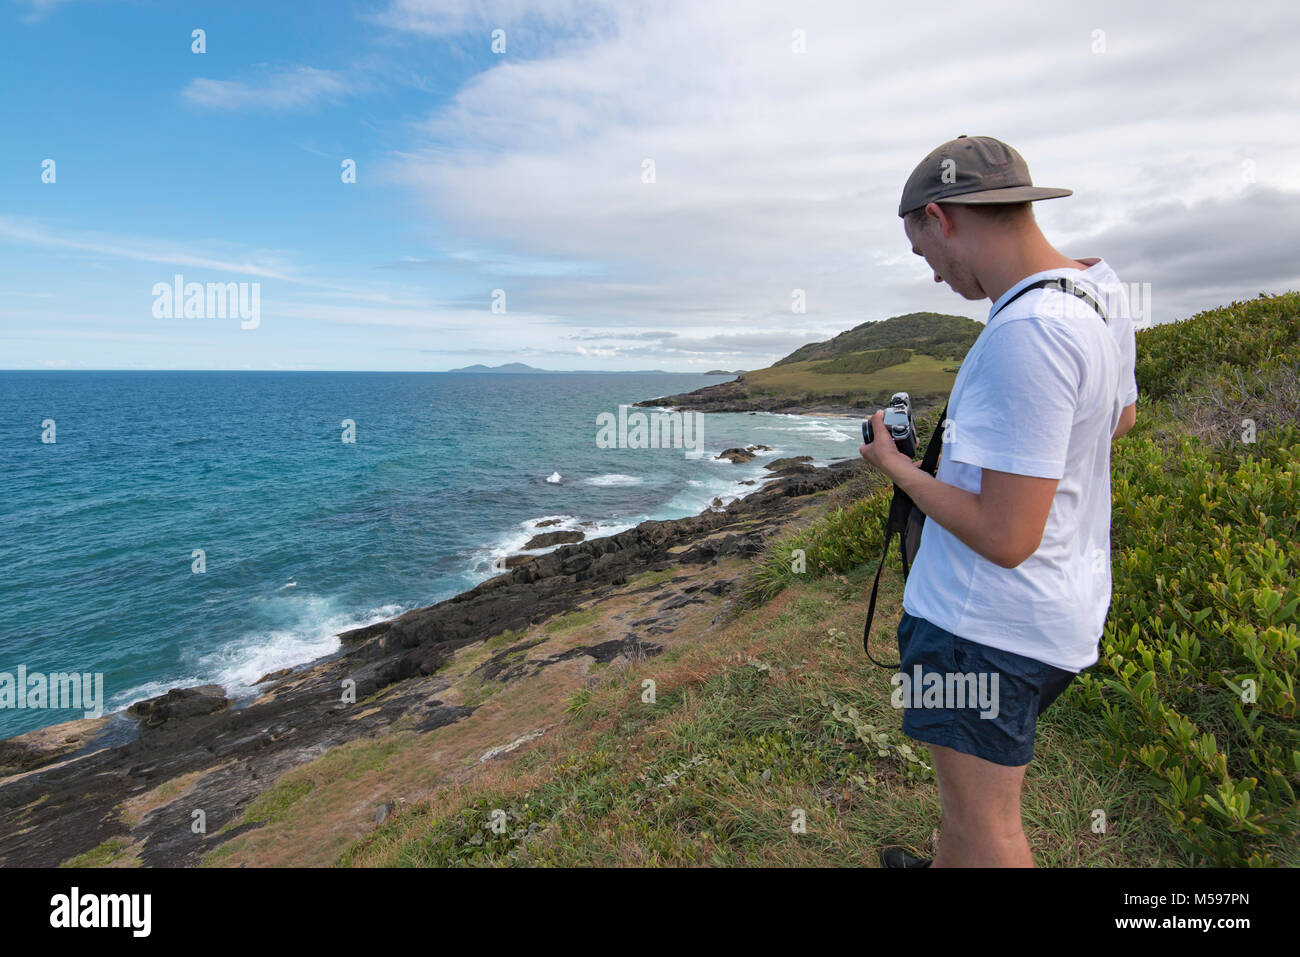 A young man taking photos near the ocean with an analogue SLR camera - Stock Image